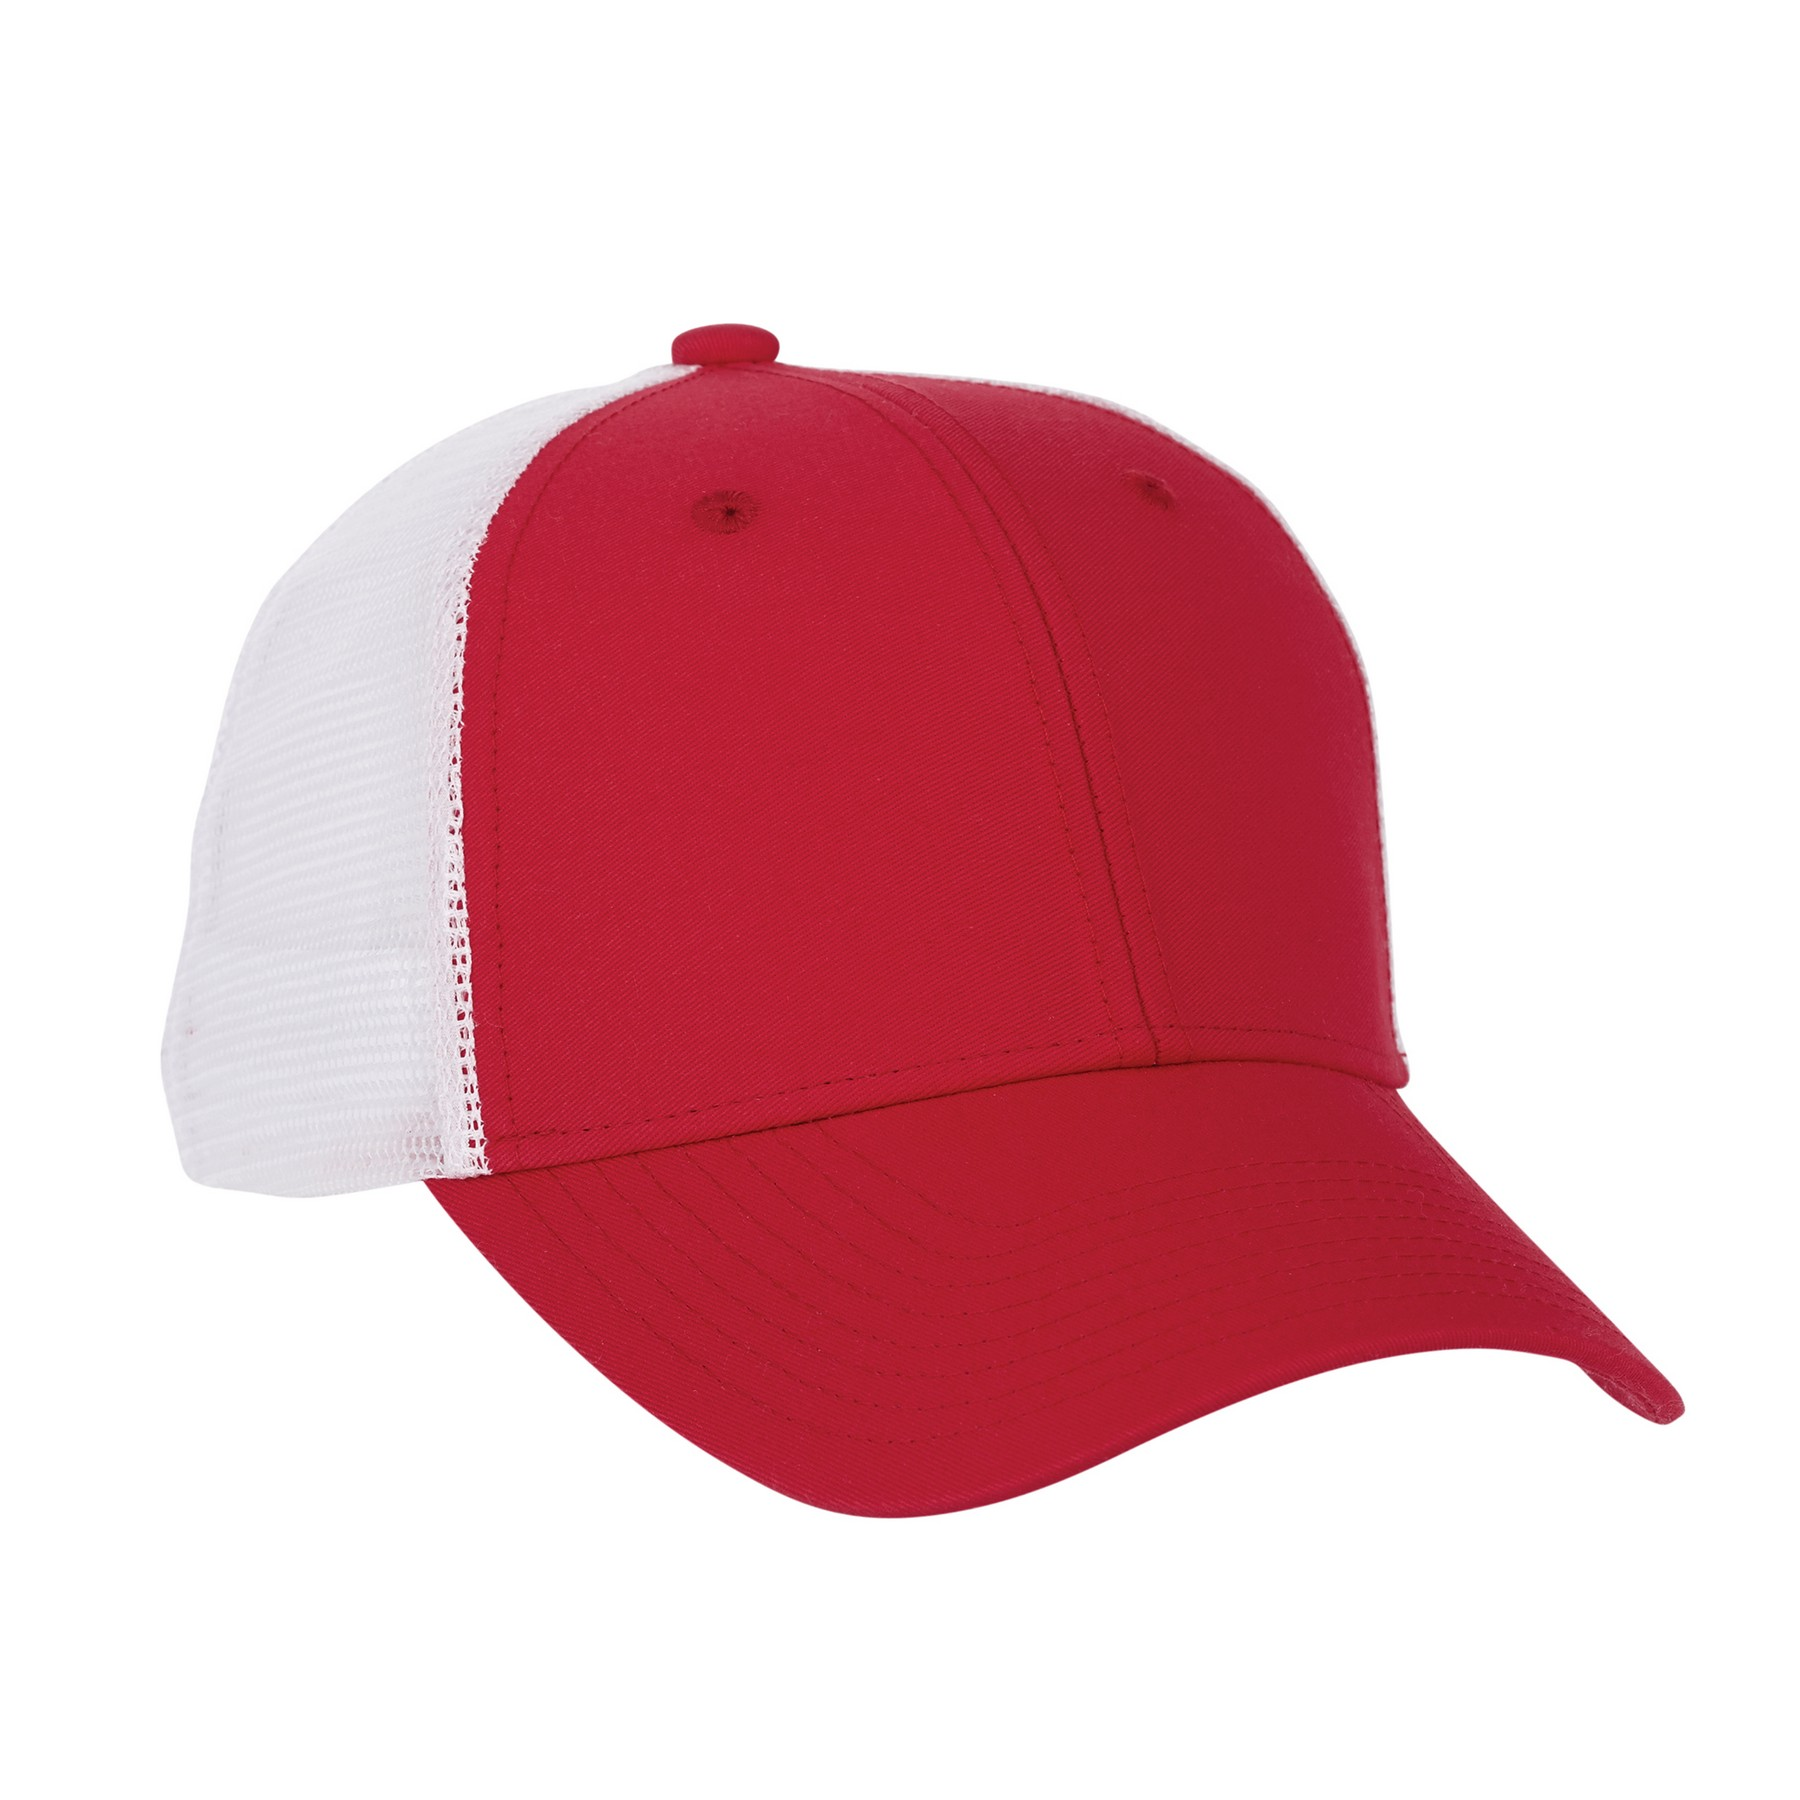 Surpass Ballcap, #32023 - Embroidered